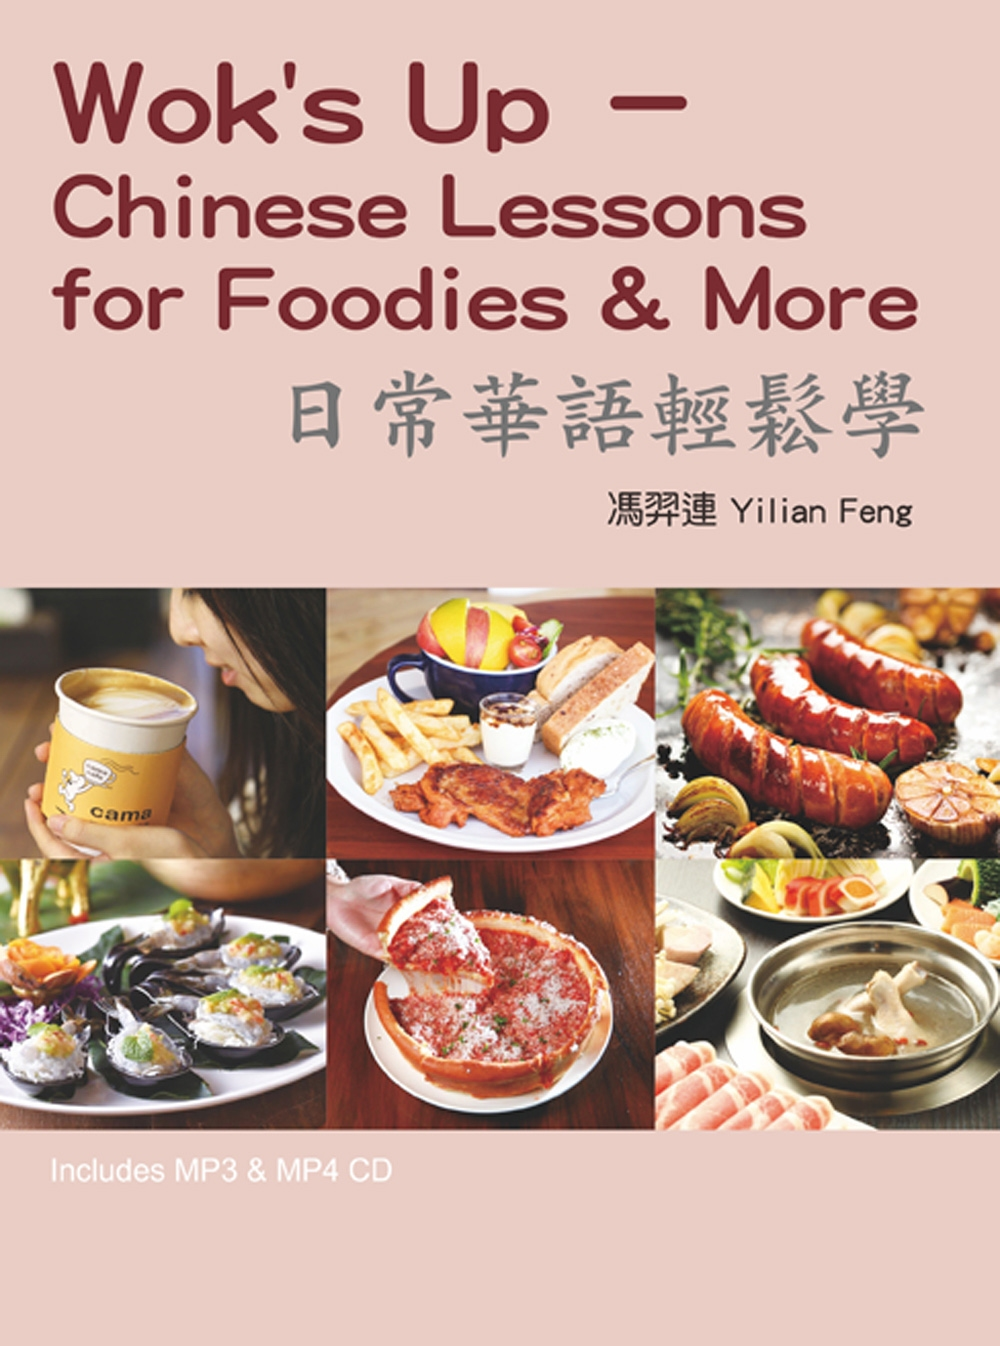 日常華語輕鬆學(單字及會話MP3+單字MP4):Wok's Up – Chinese Lessons for Foodies & More